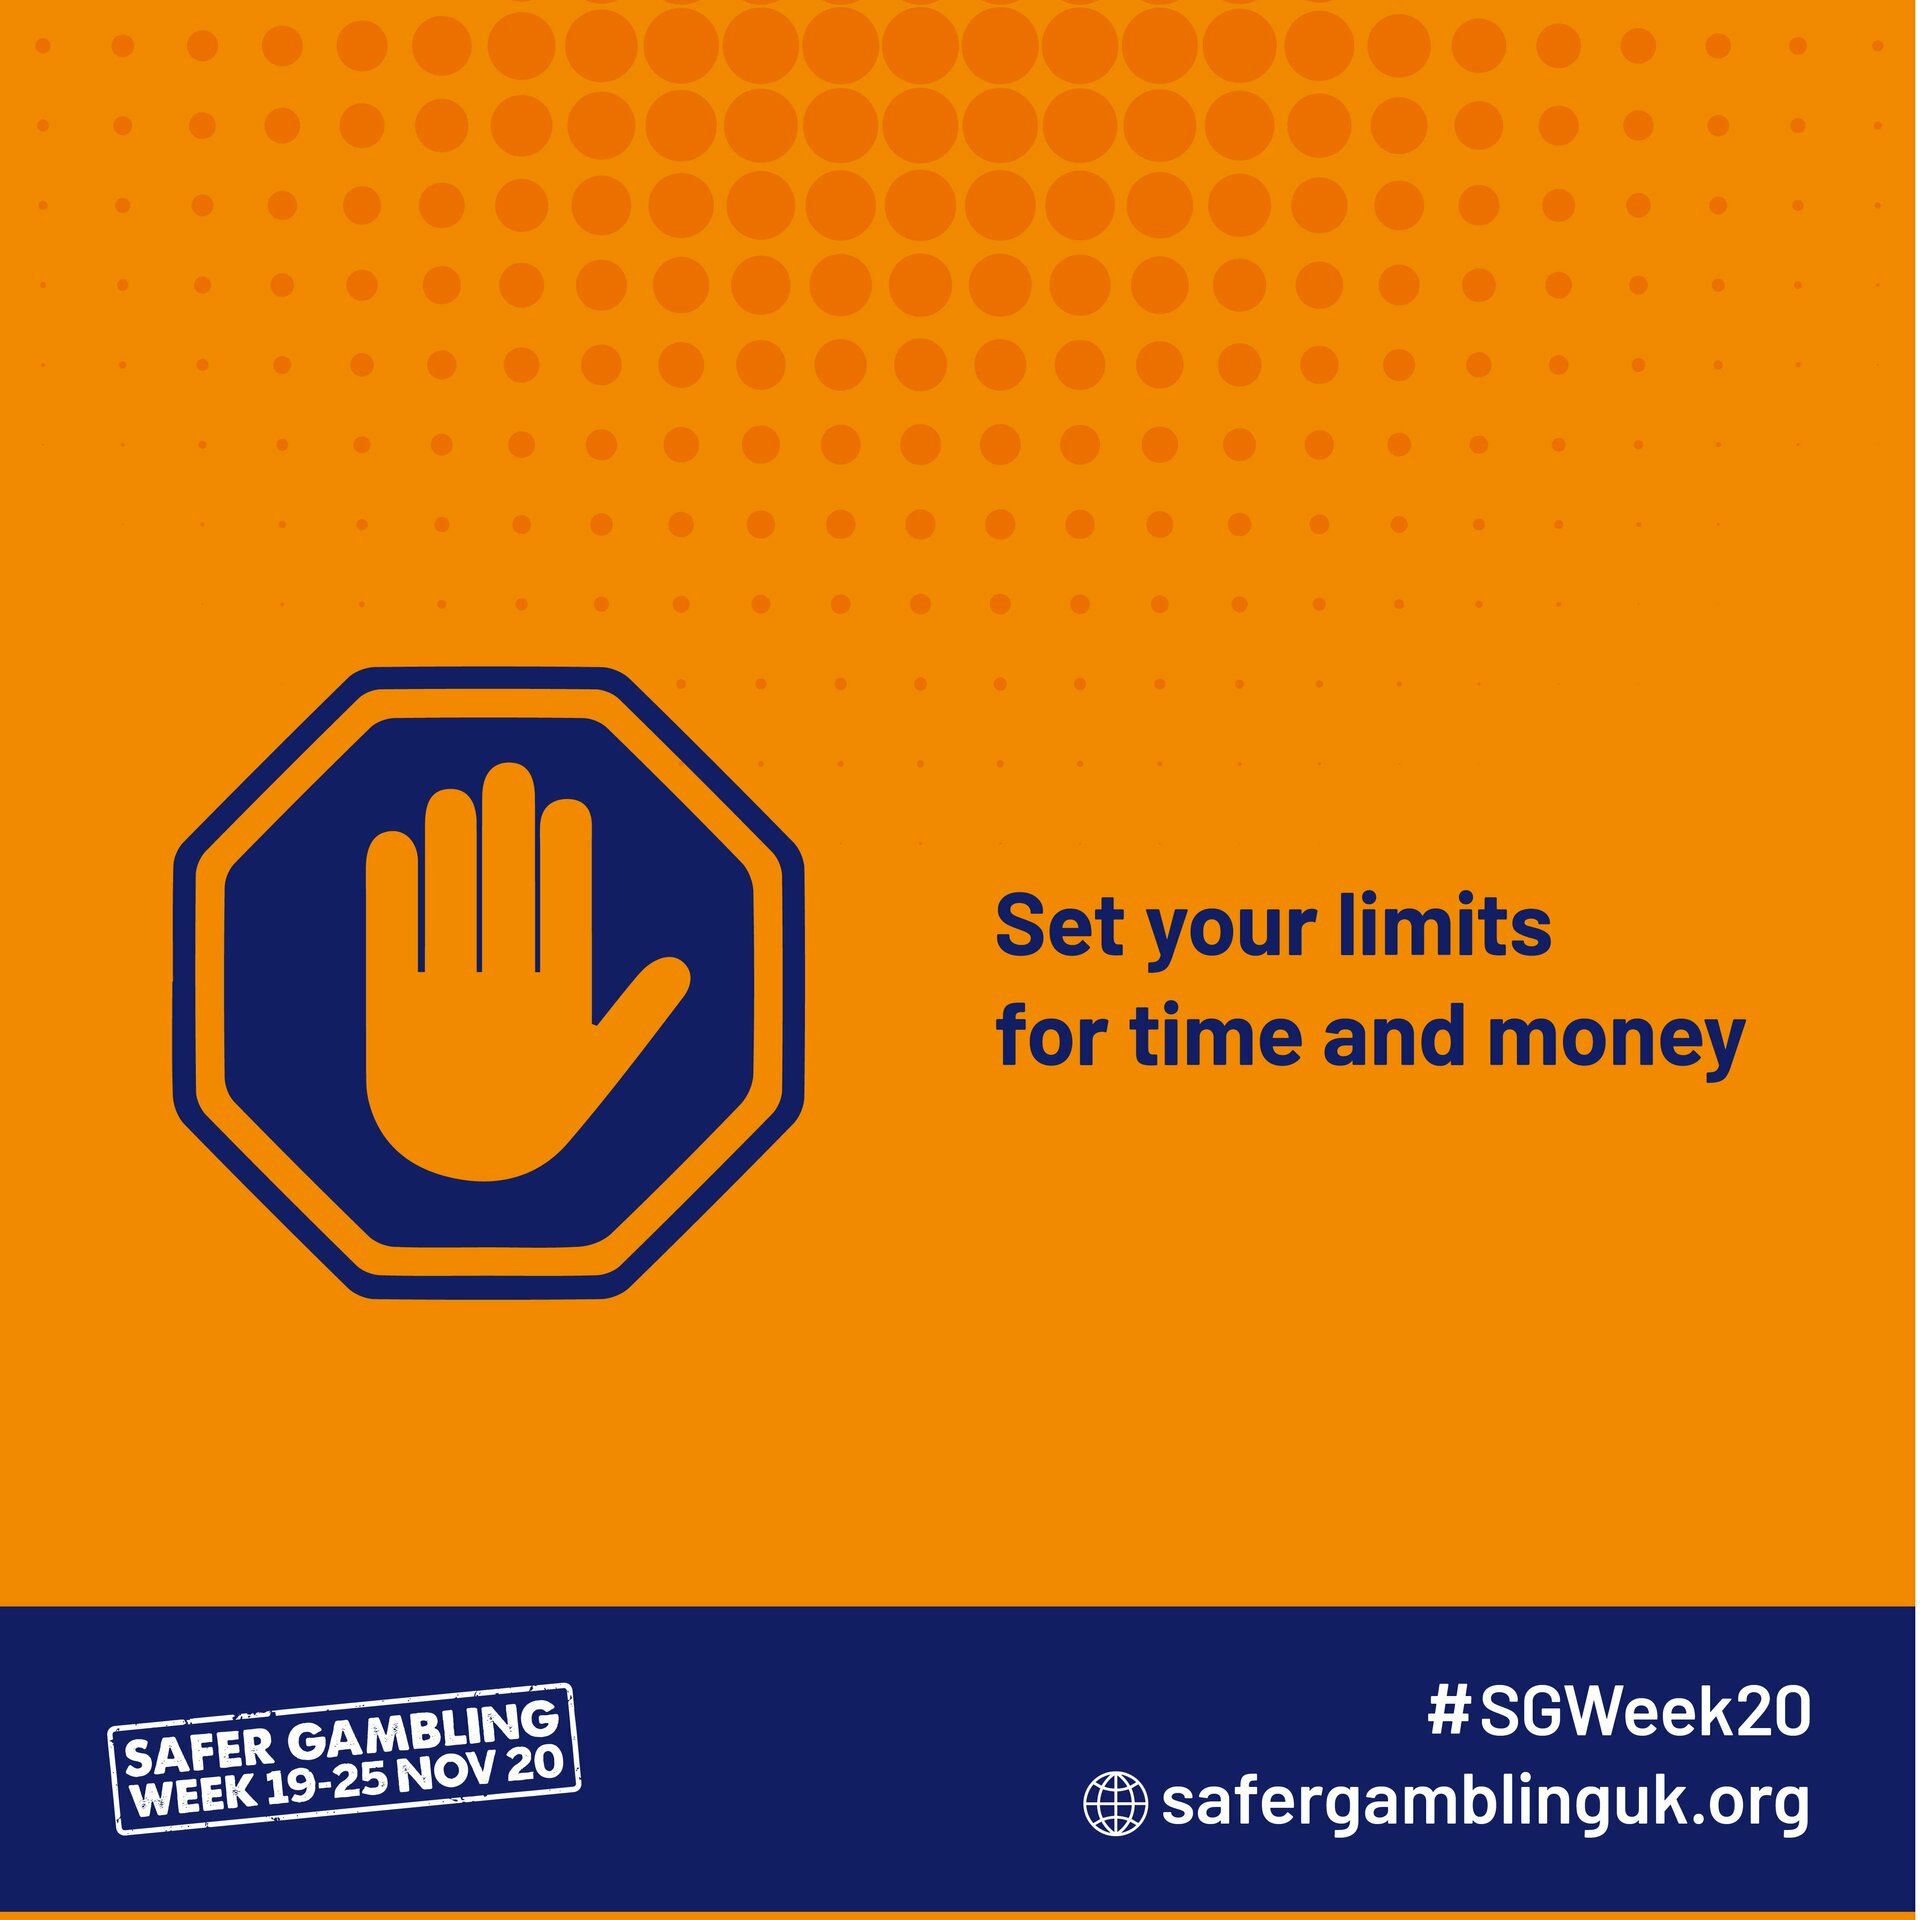 Safer Gambling Week 2020 - Set your limits for time and money